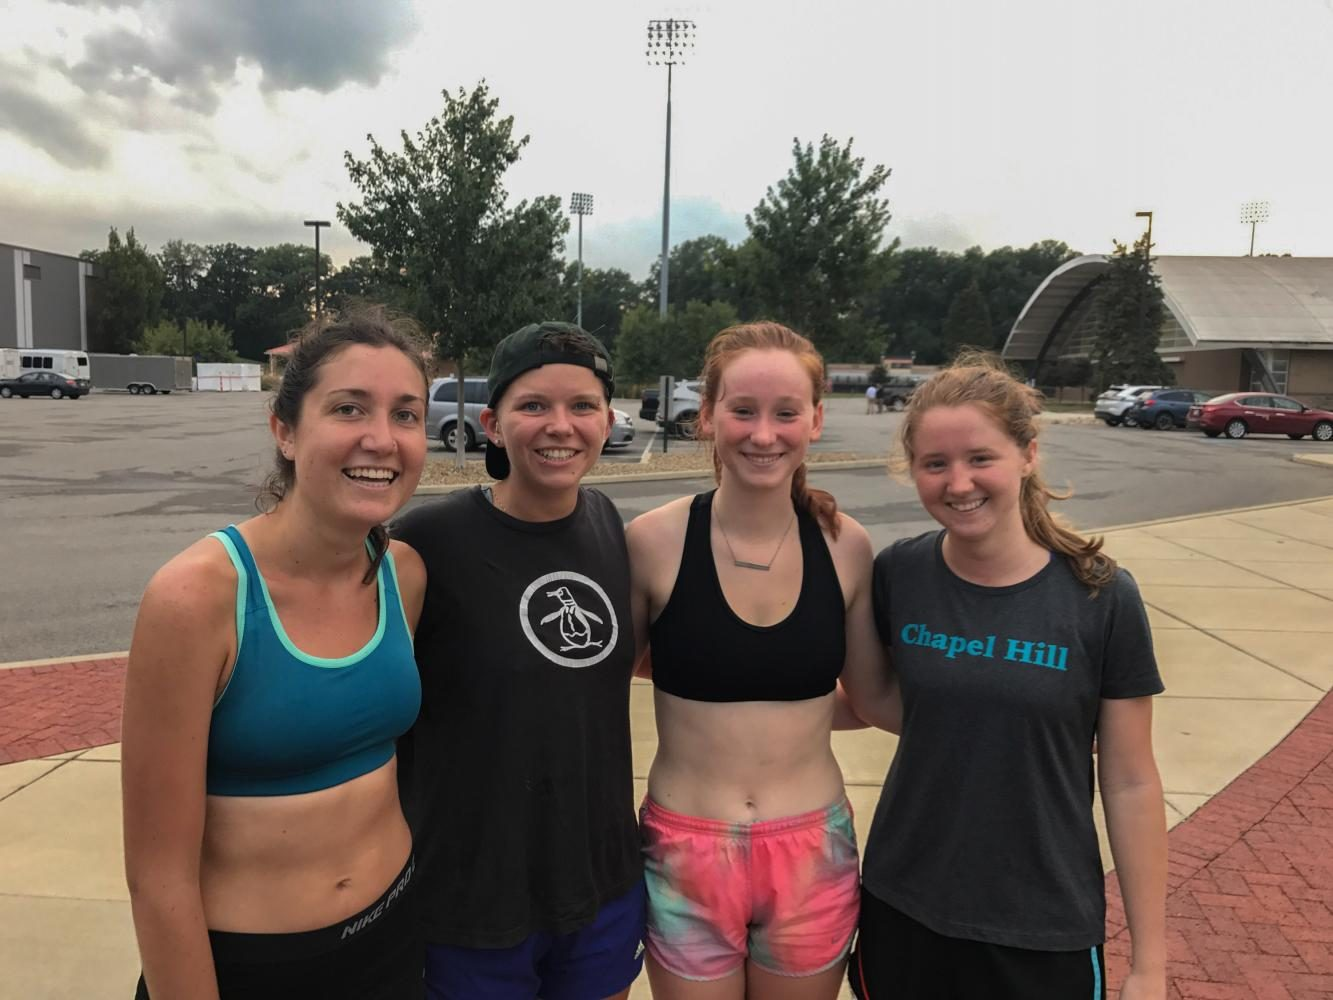 ITLR – From left to right: Joy Castro-Wehr, Abby Bellows, Julia Denlinger, Rosie Kerwin